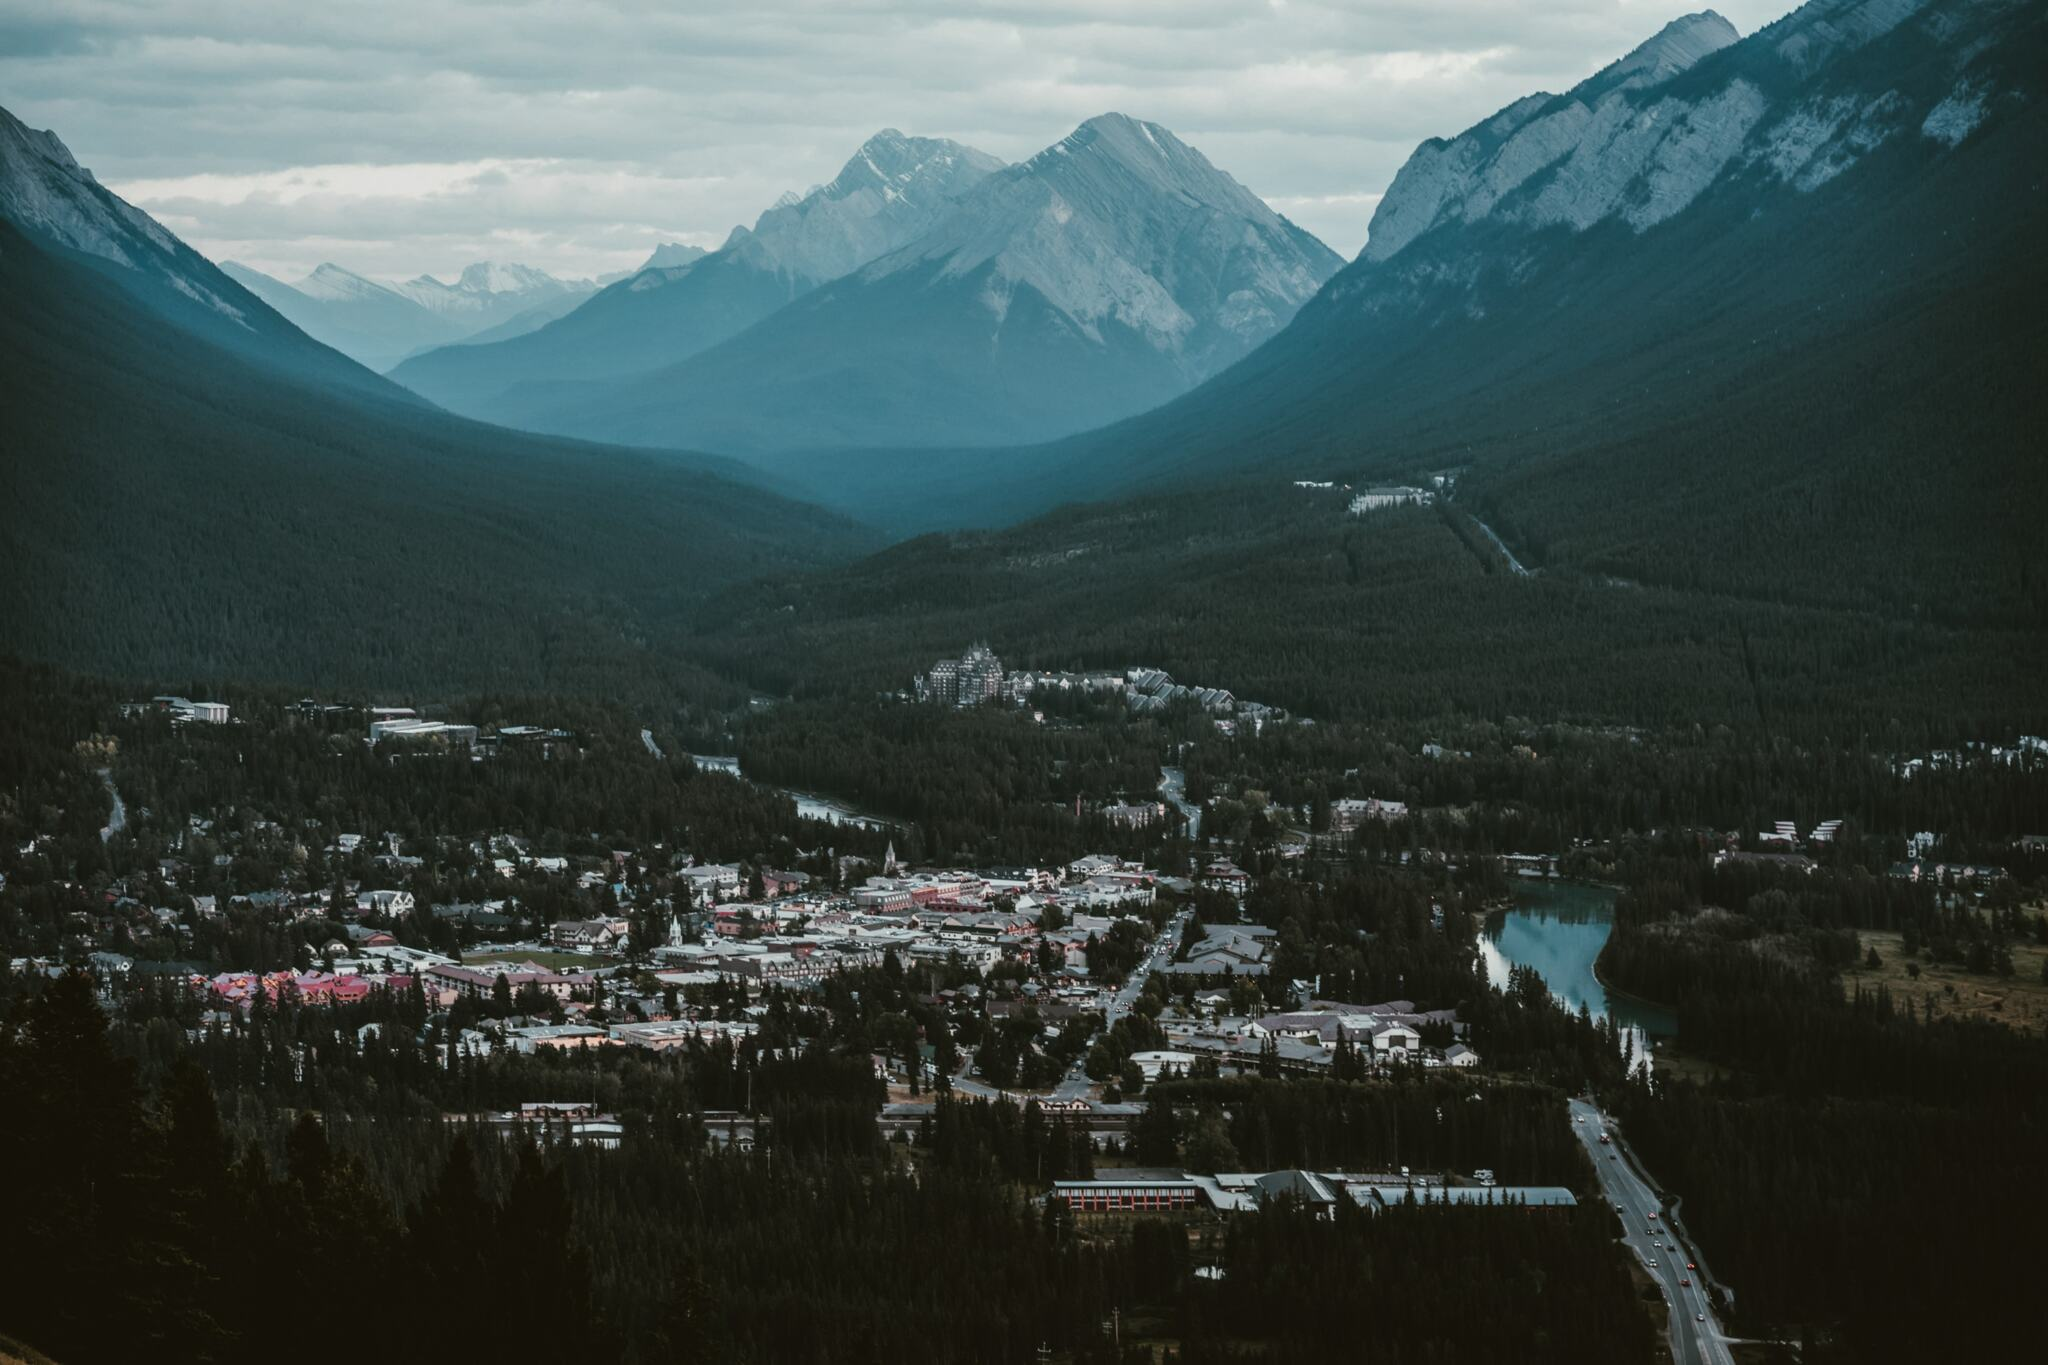 Banff Centre for Arts and Creativity: An Interview with Matthew Flawn